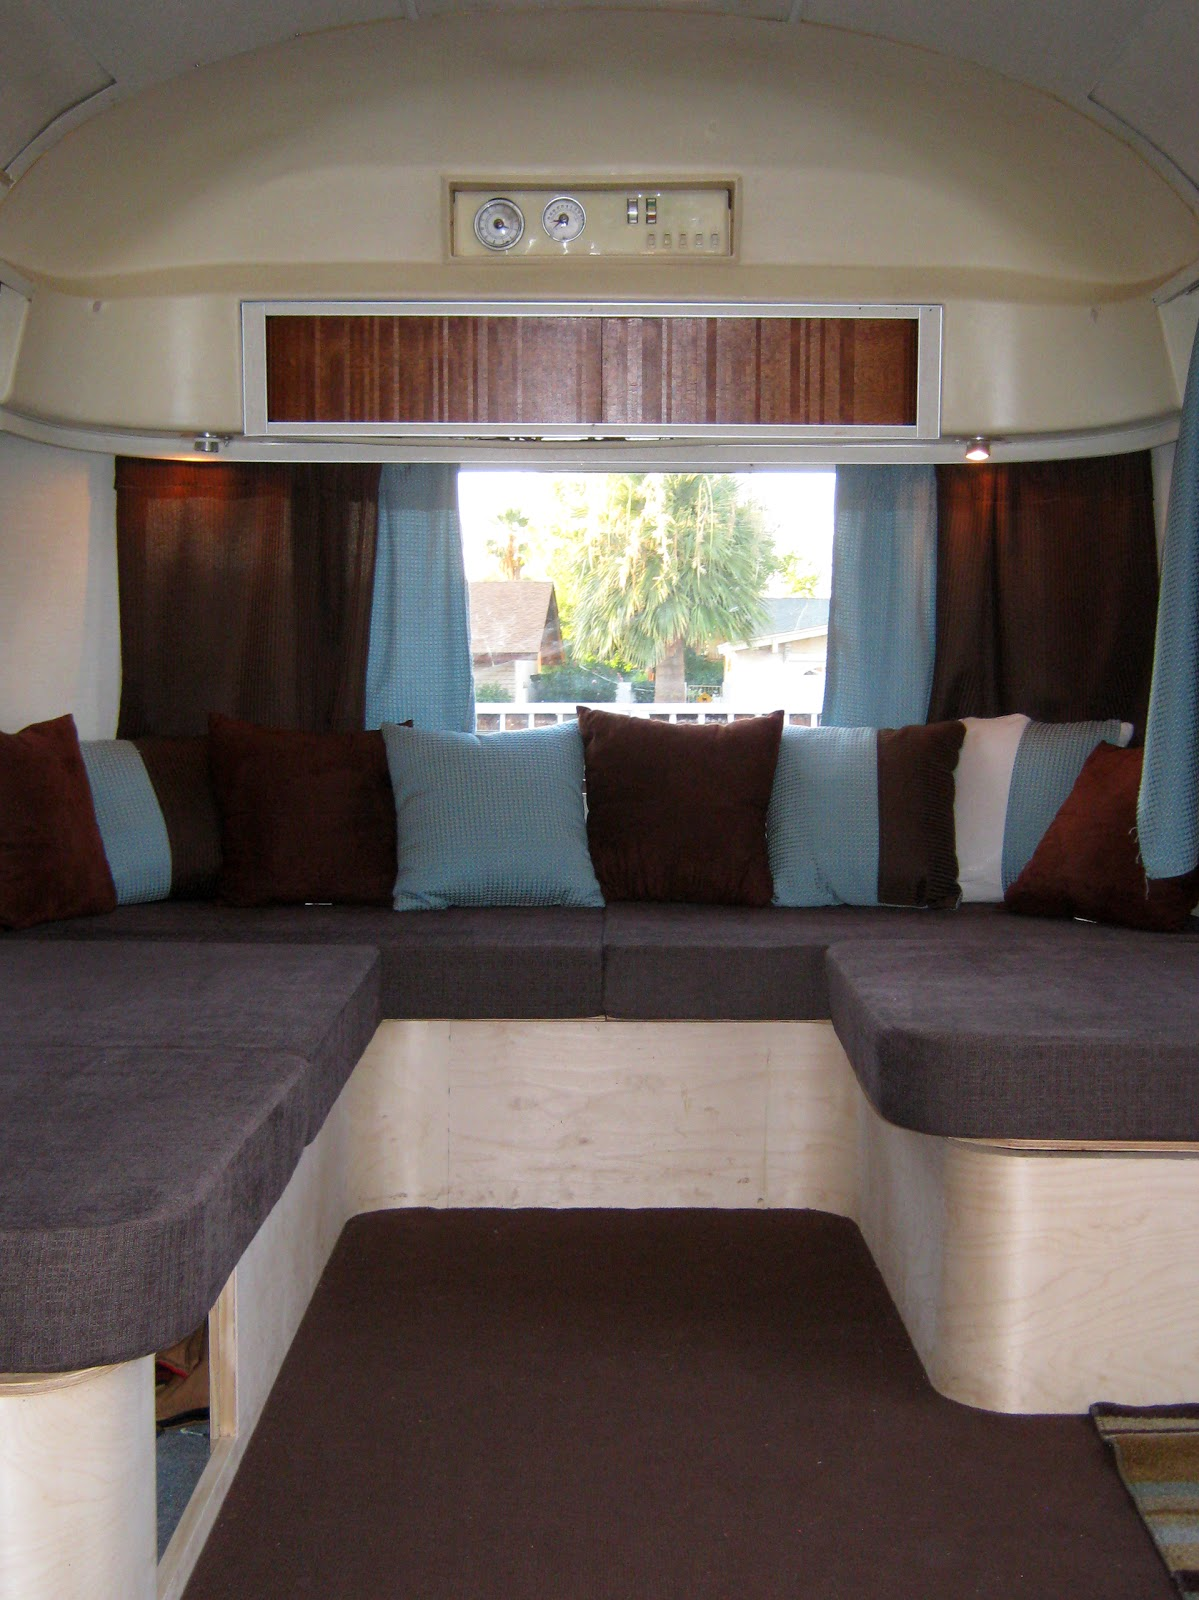 airstream renovation airstream front seating. Black Bedroom Furniture Sets. Home Design Ideas